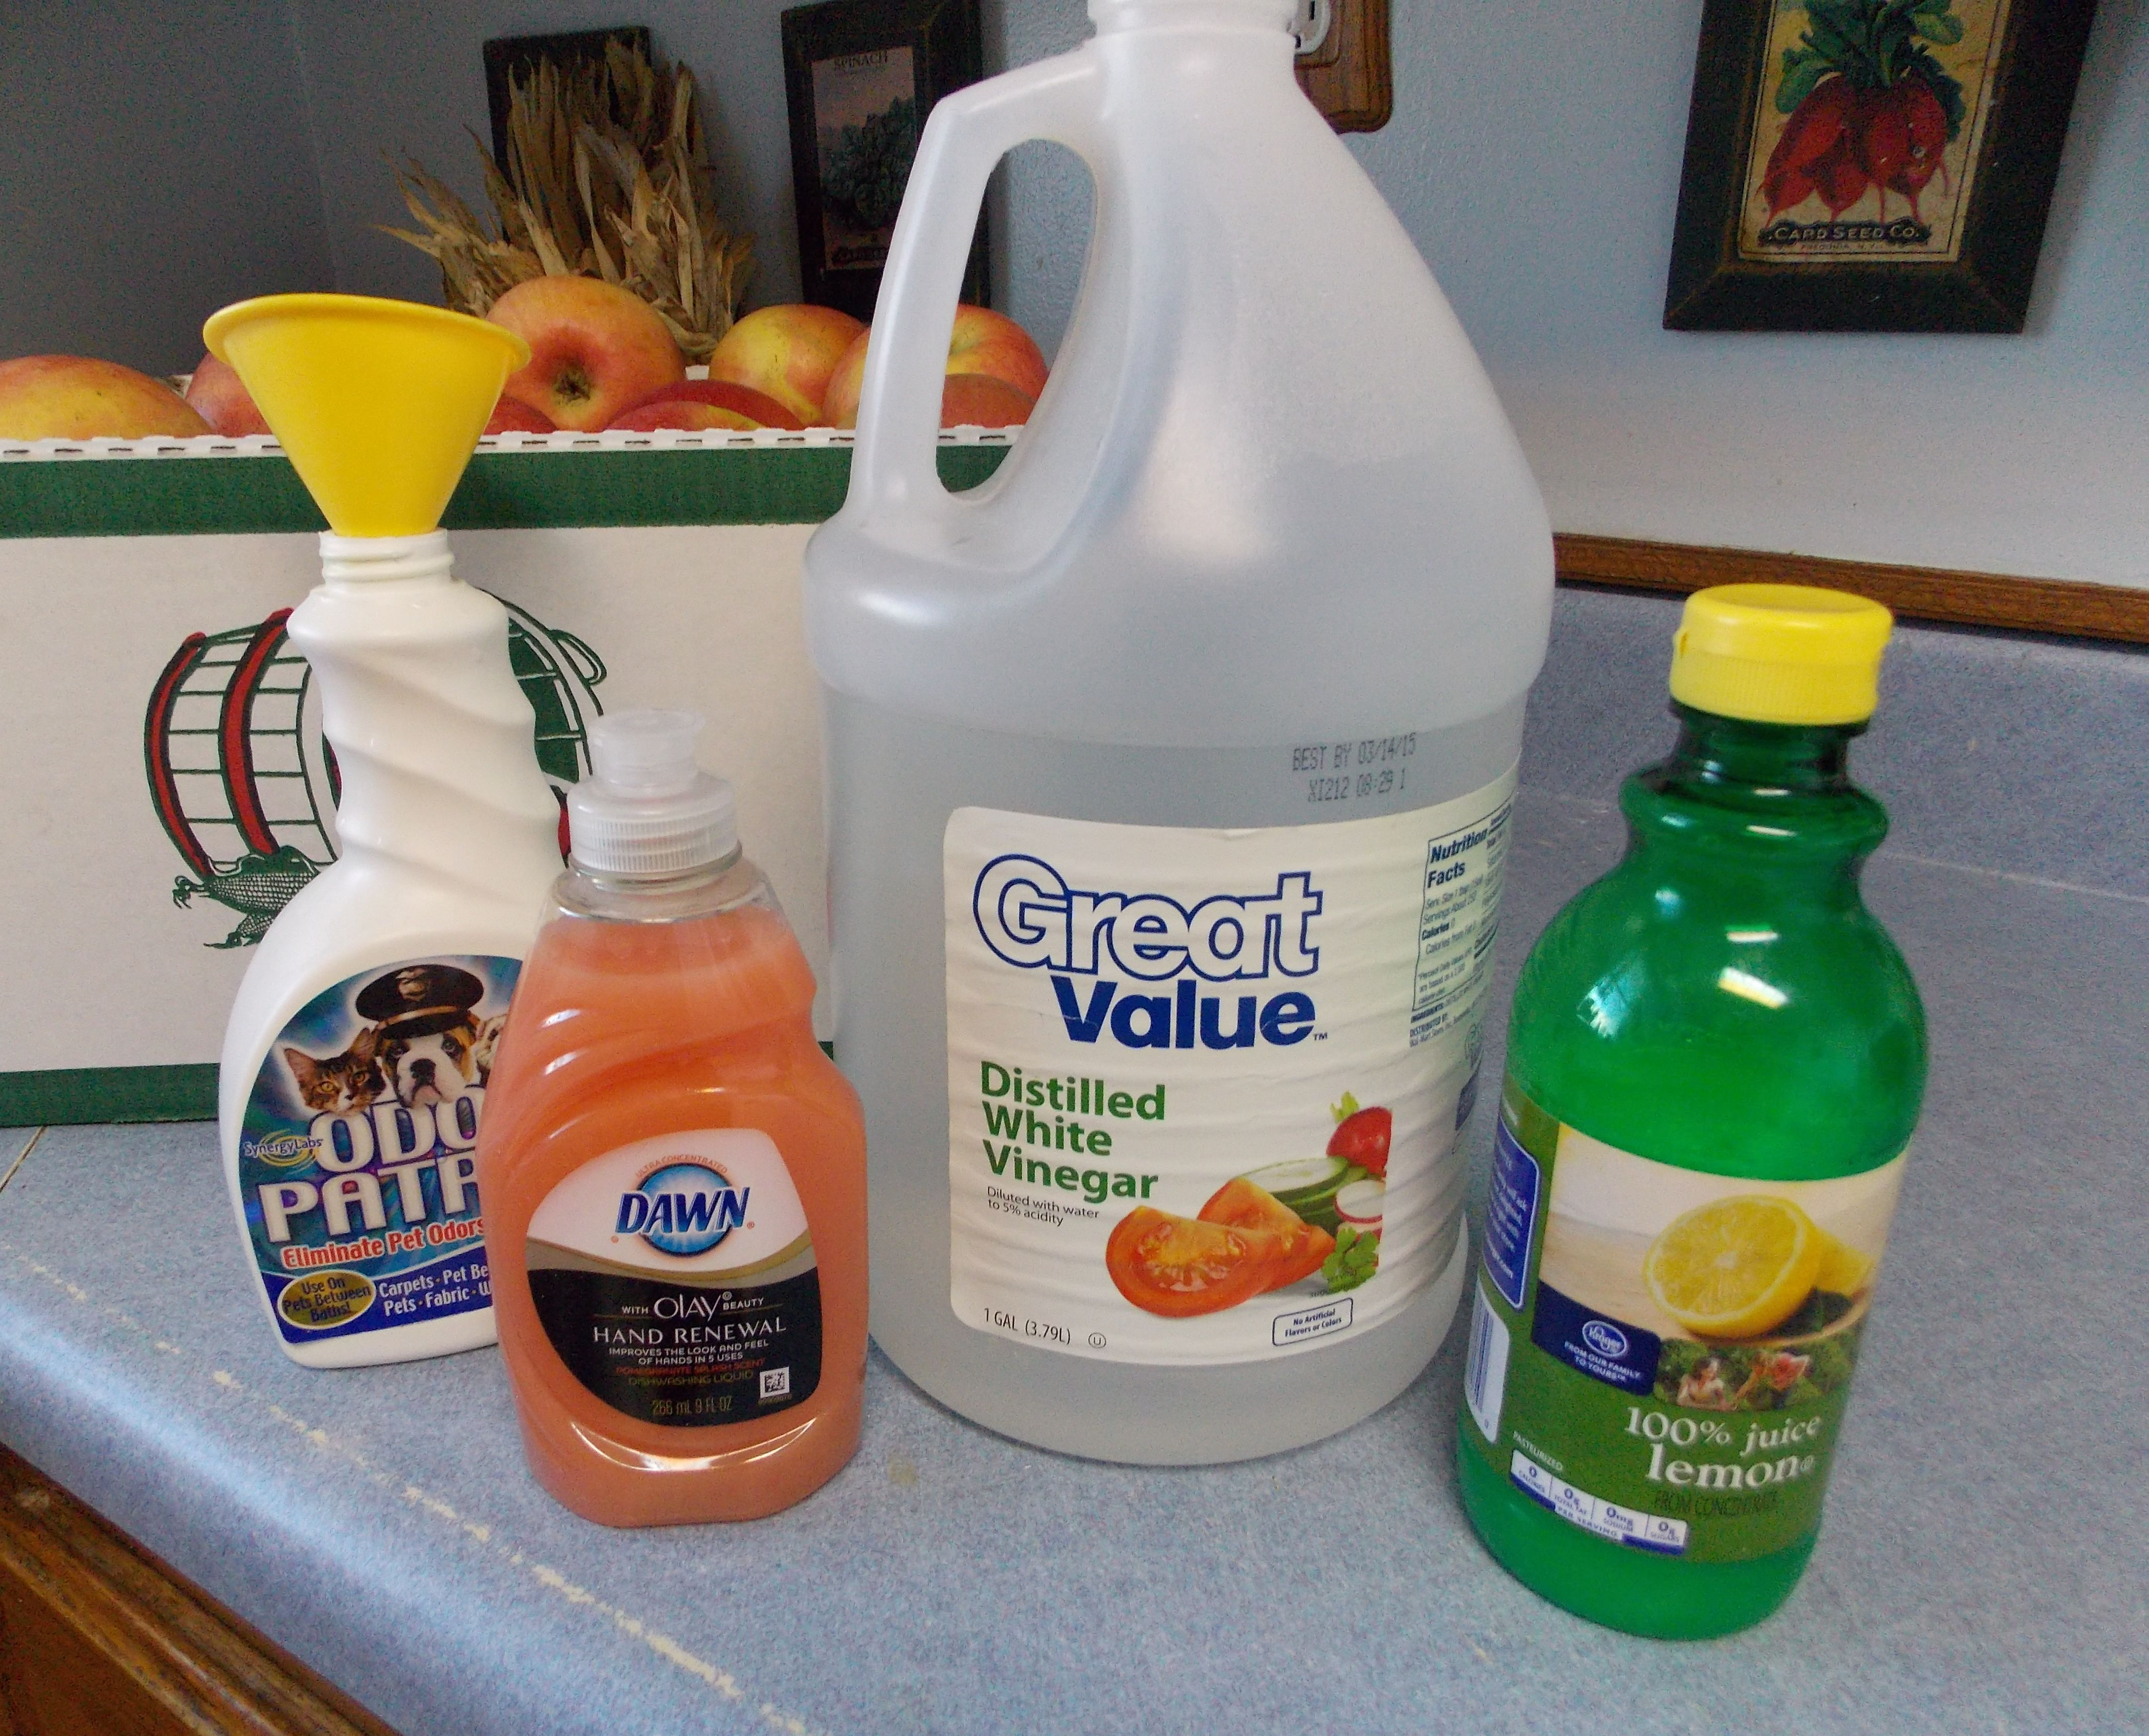 Hard water deposit cleaner - this did a pretty good job with no ...